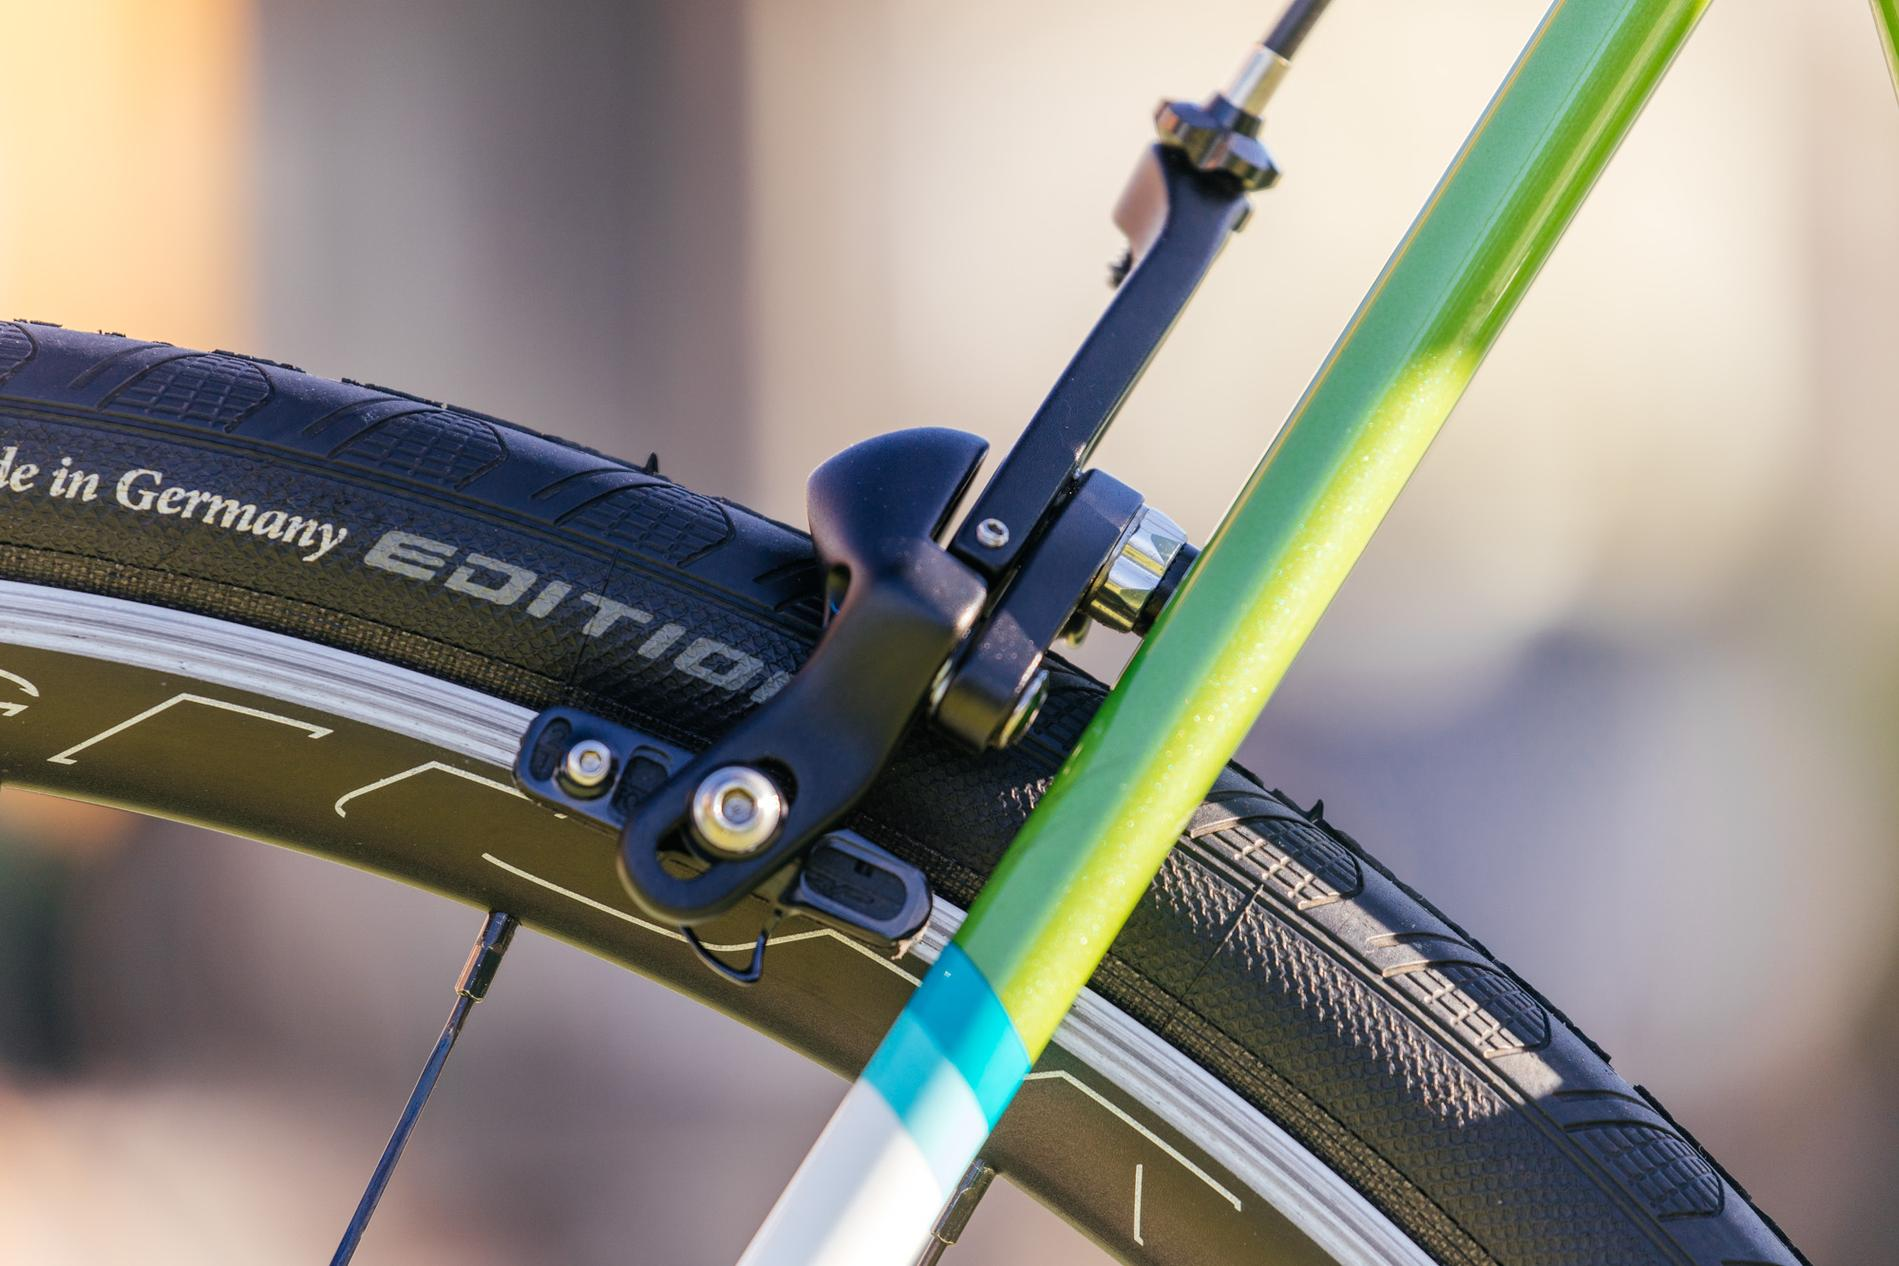 Mike's All-City Kiwi Green Mr. Pink with Campagnolo Chorus